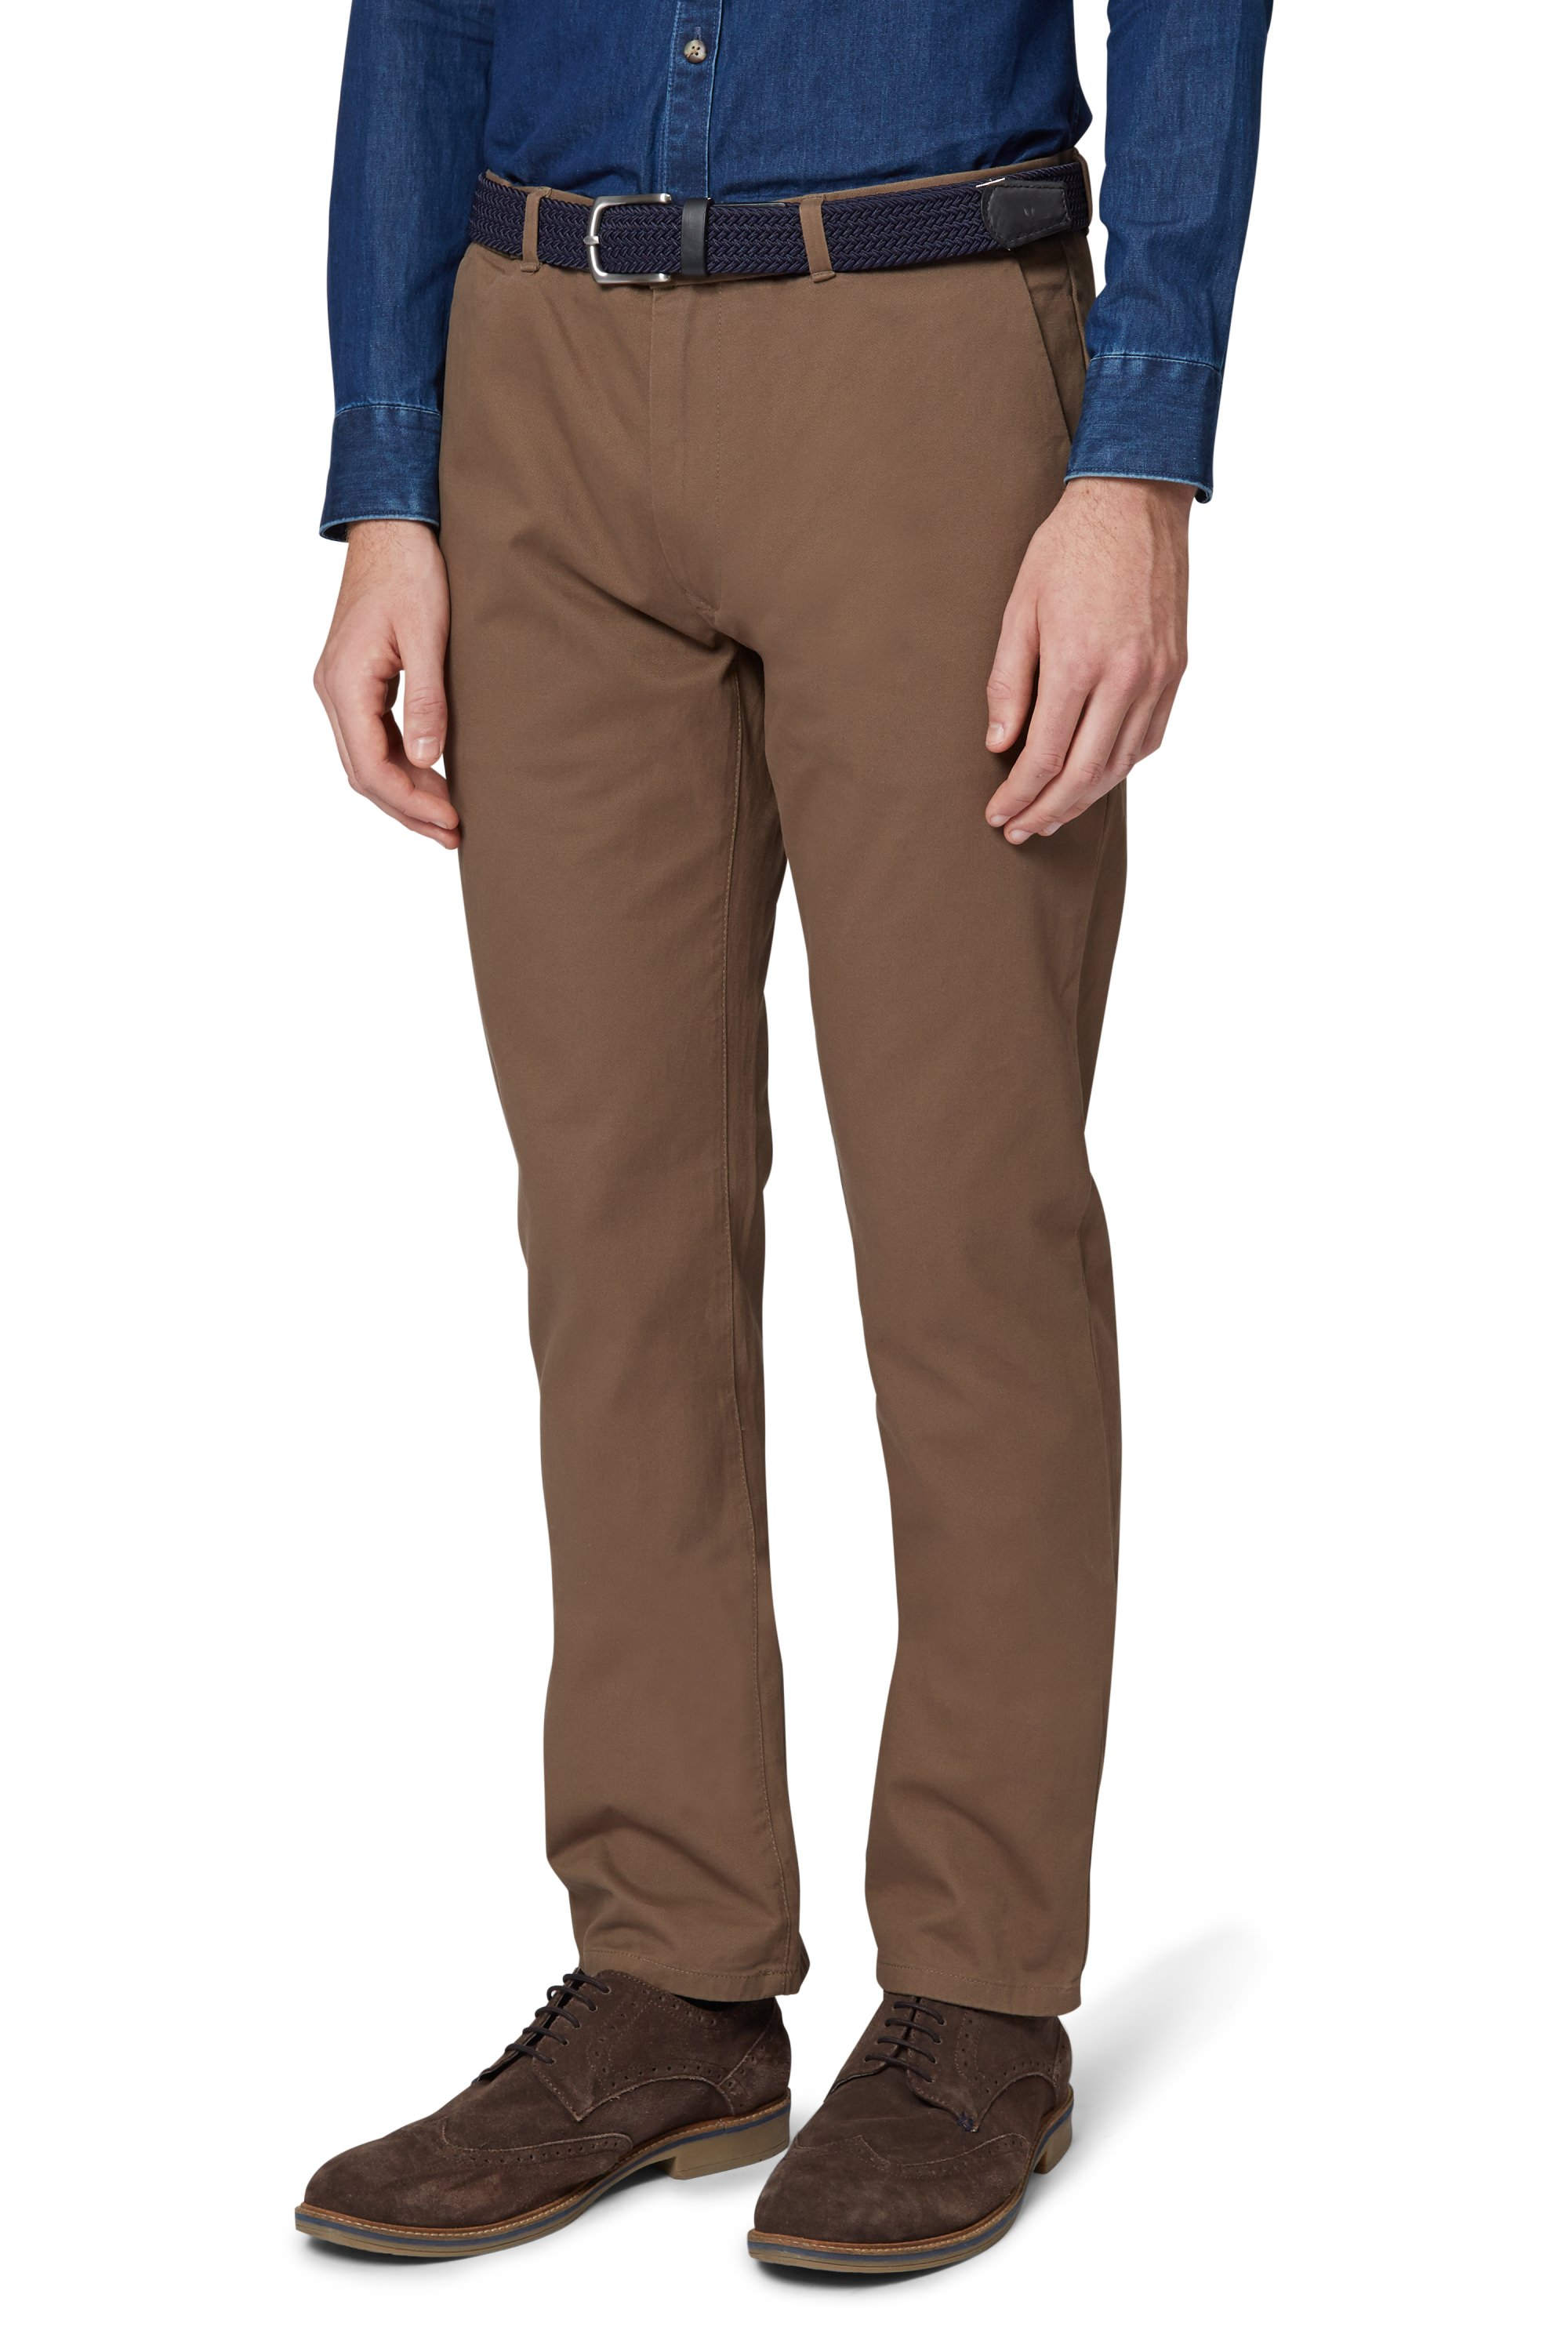 Moss London Mens Tobacco Brown Chinos Slim Fit Trousers ...